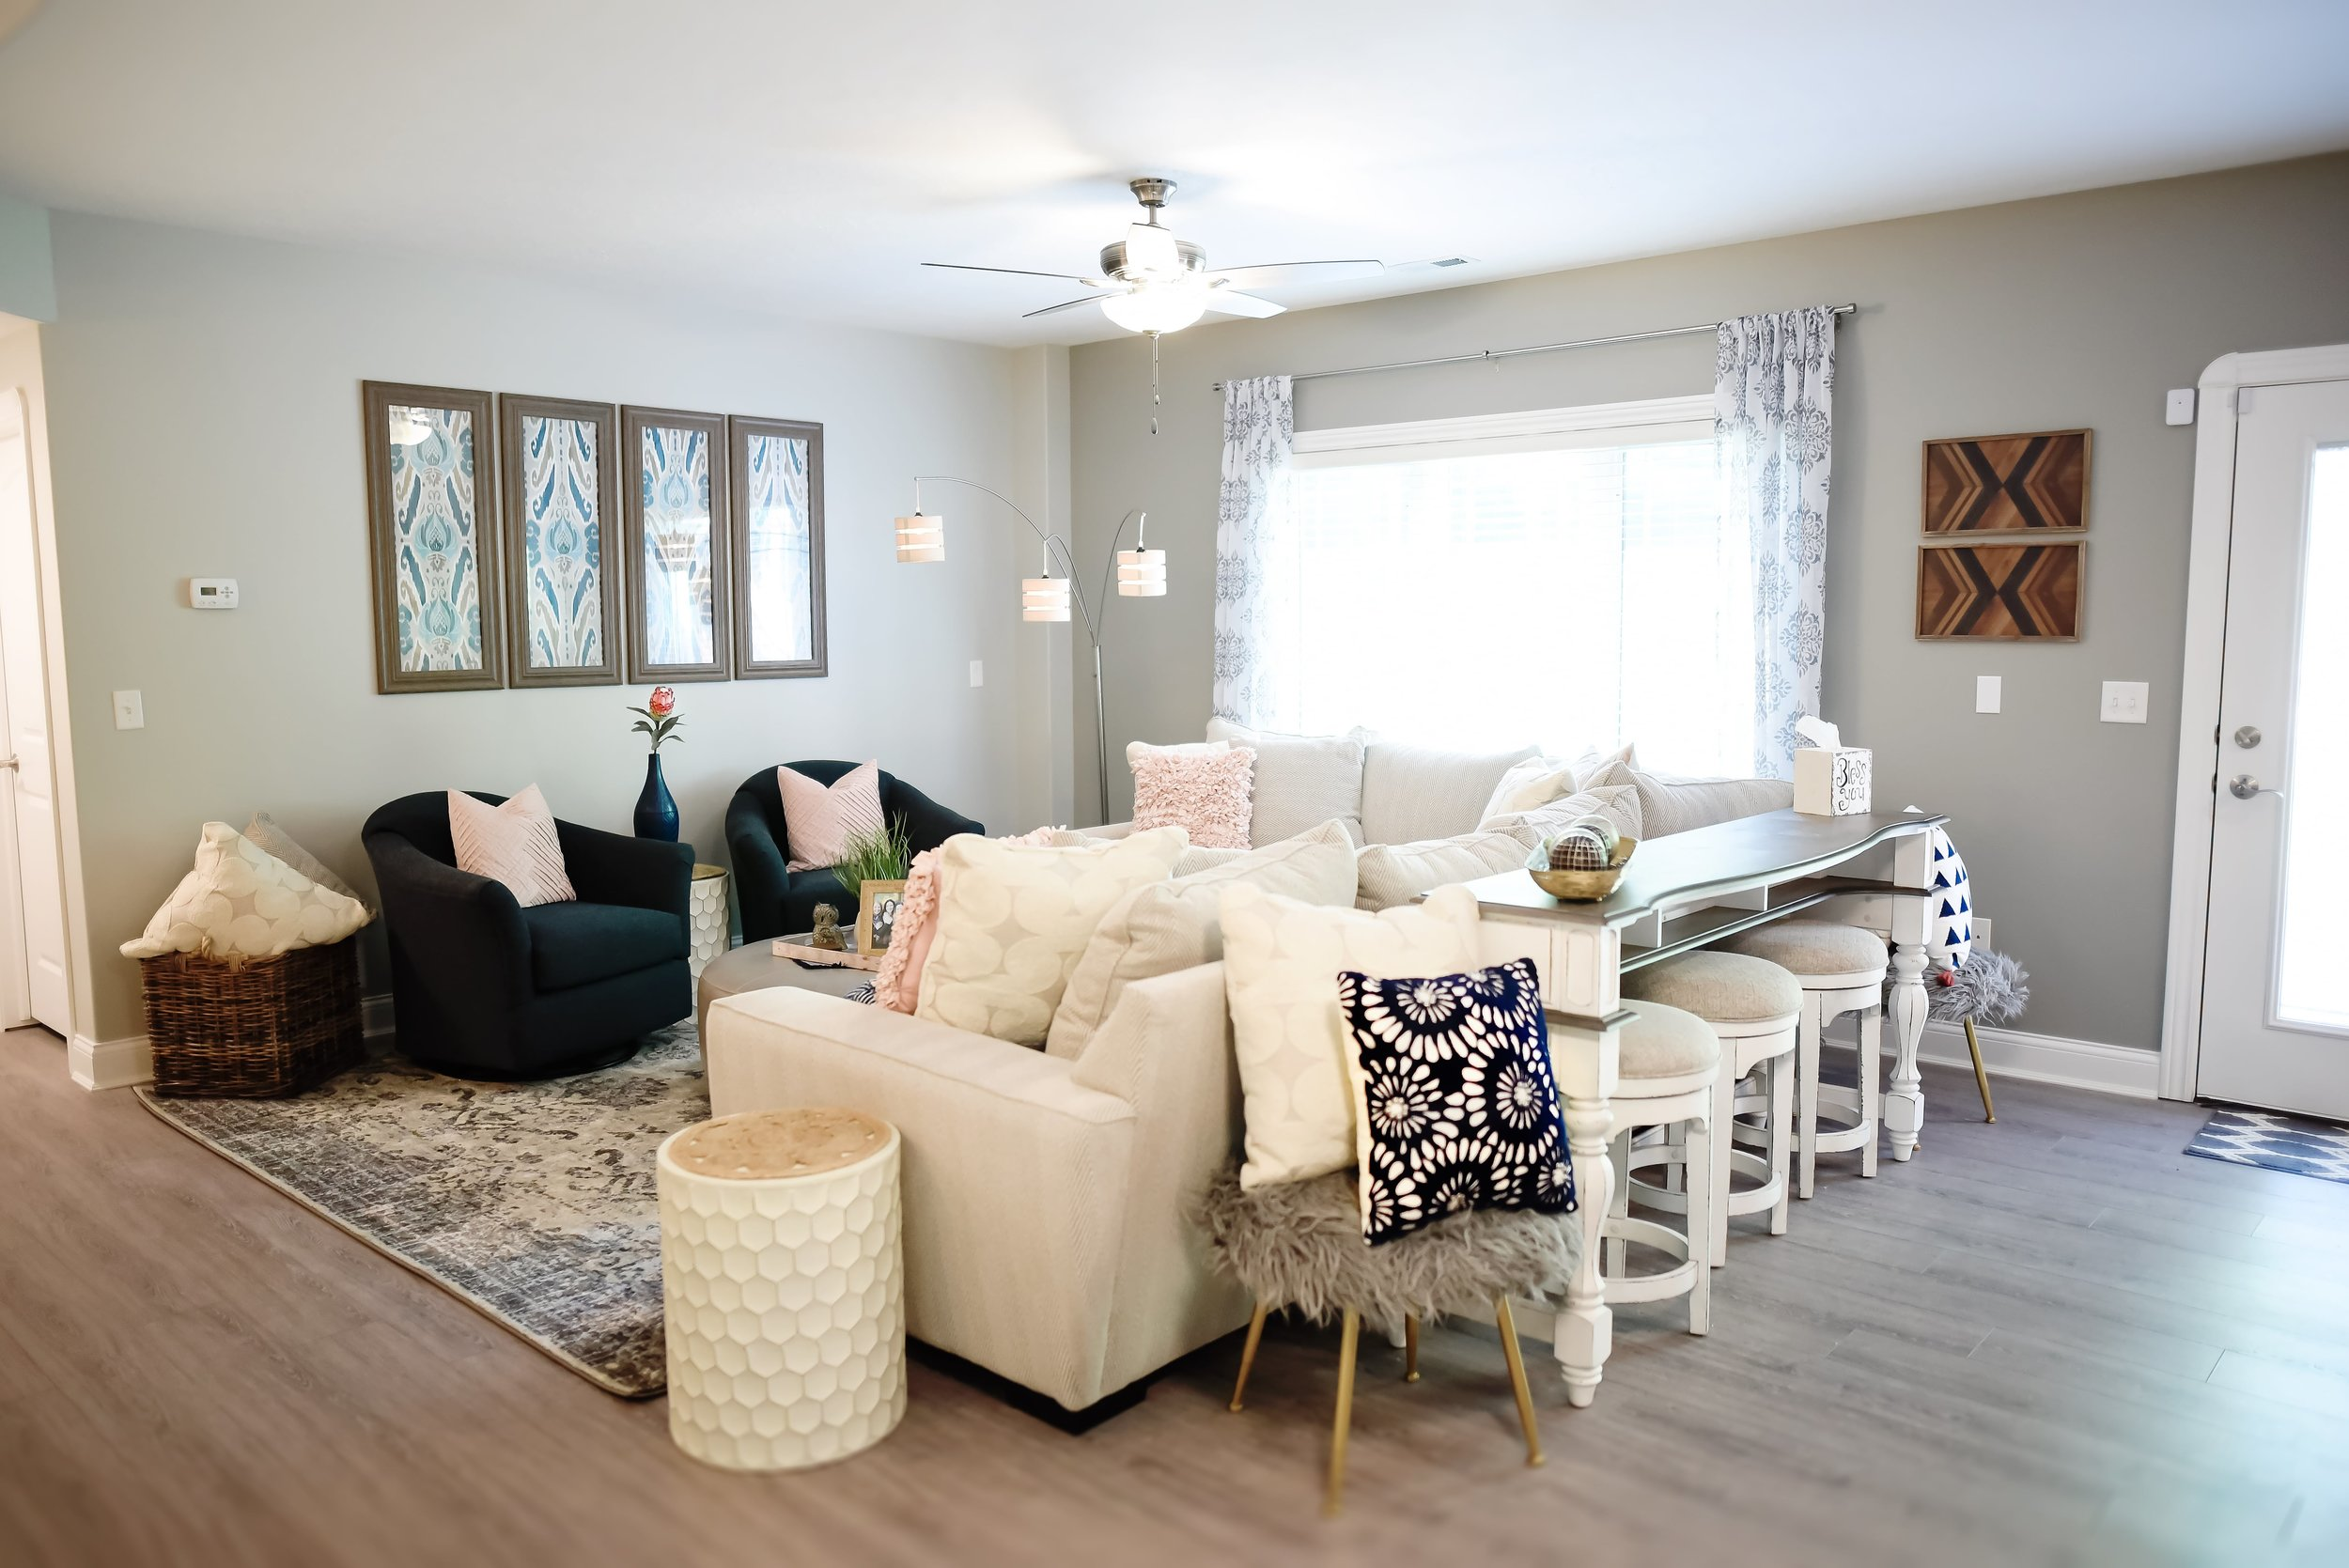 Easter Lake - Ankeny, Iowa by H.Prall and Co. Interior Decorating | Photography by  Cherrie' Photography